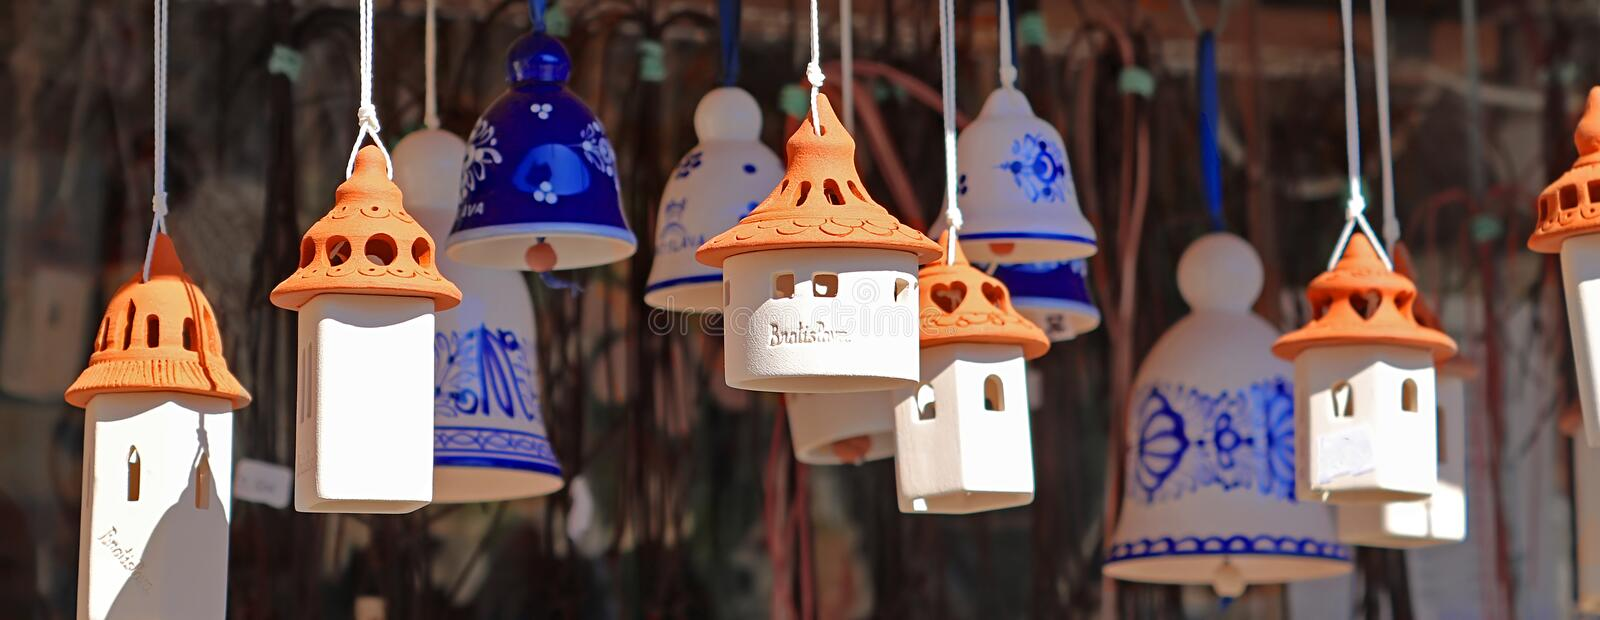 Souvenirs from Bratislava, Slovakia. Clay bells made in the form of houses stock photo